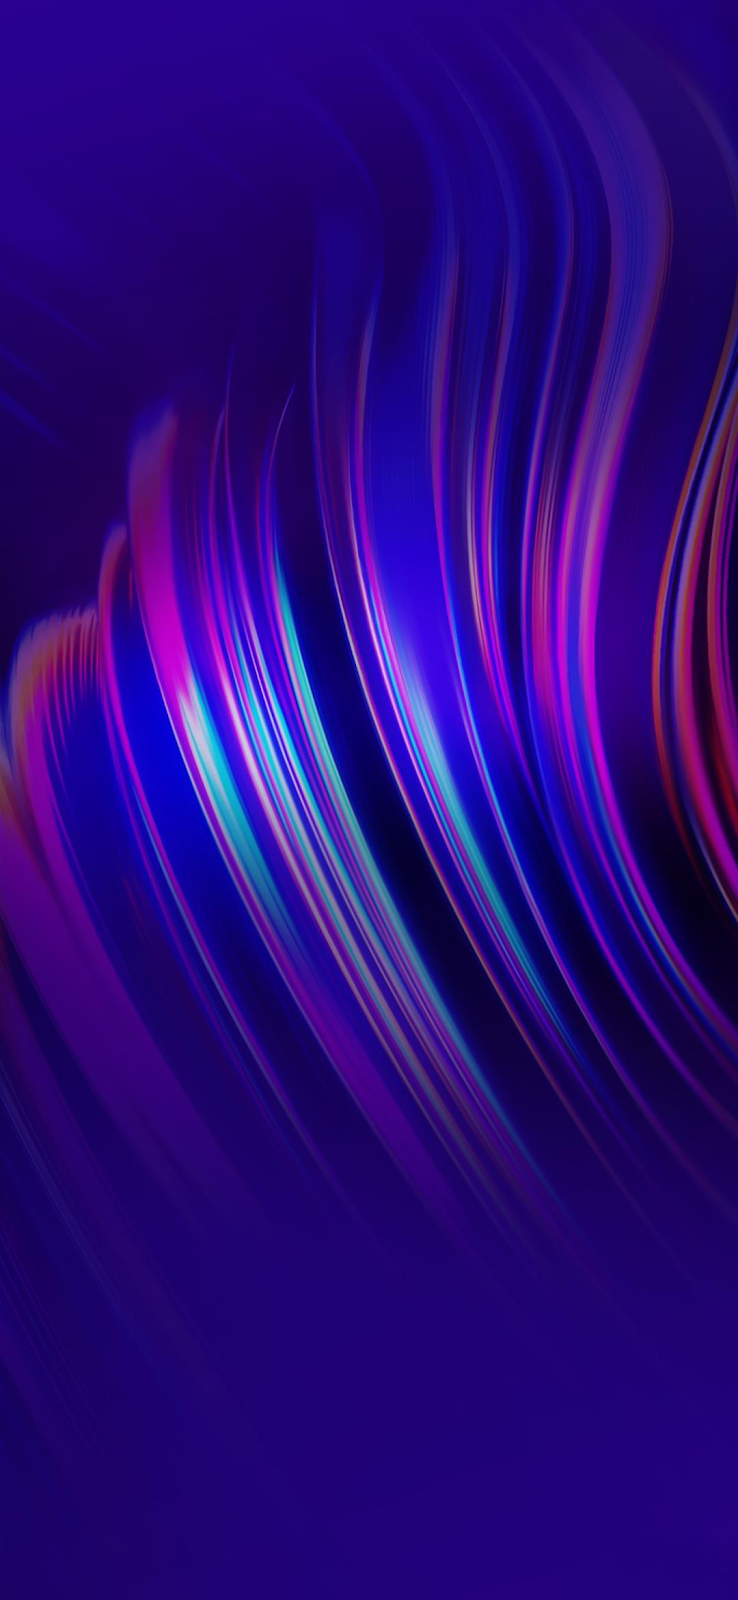 Vivo X23 Stock Wallpapers Android wallpaper, Abstract